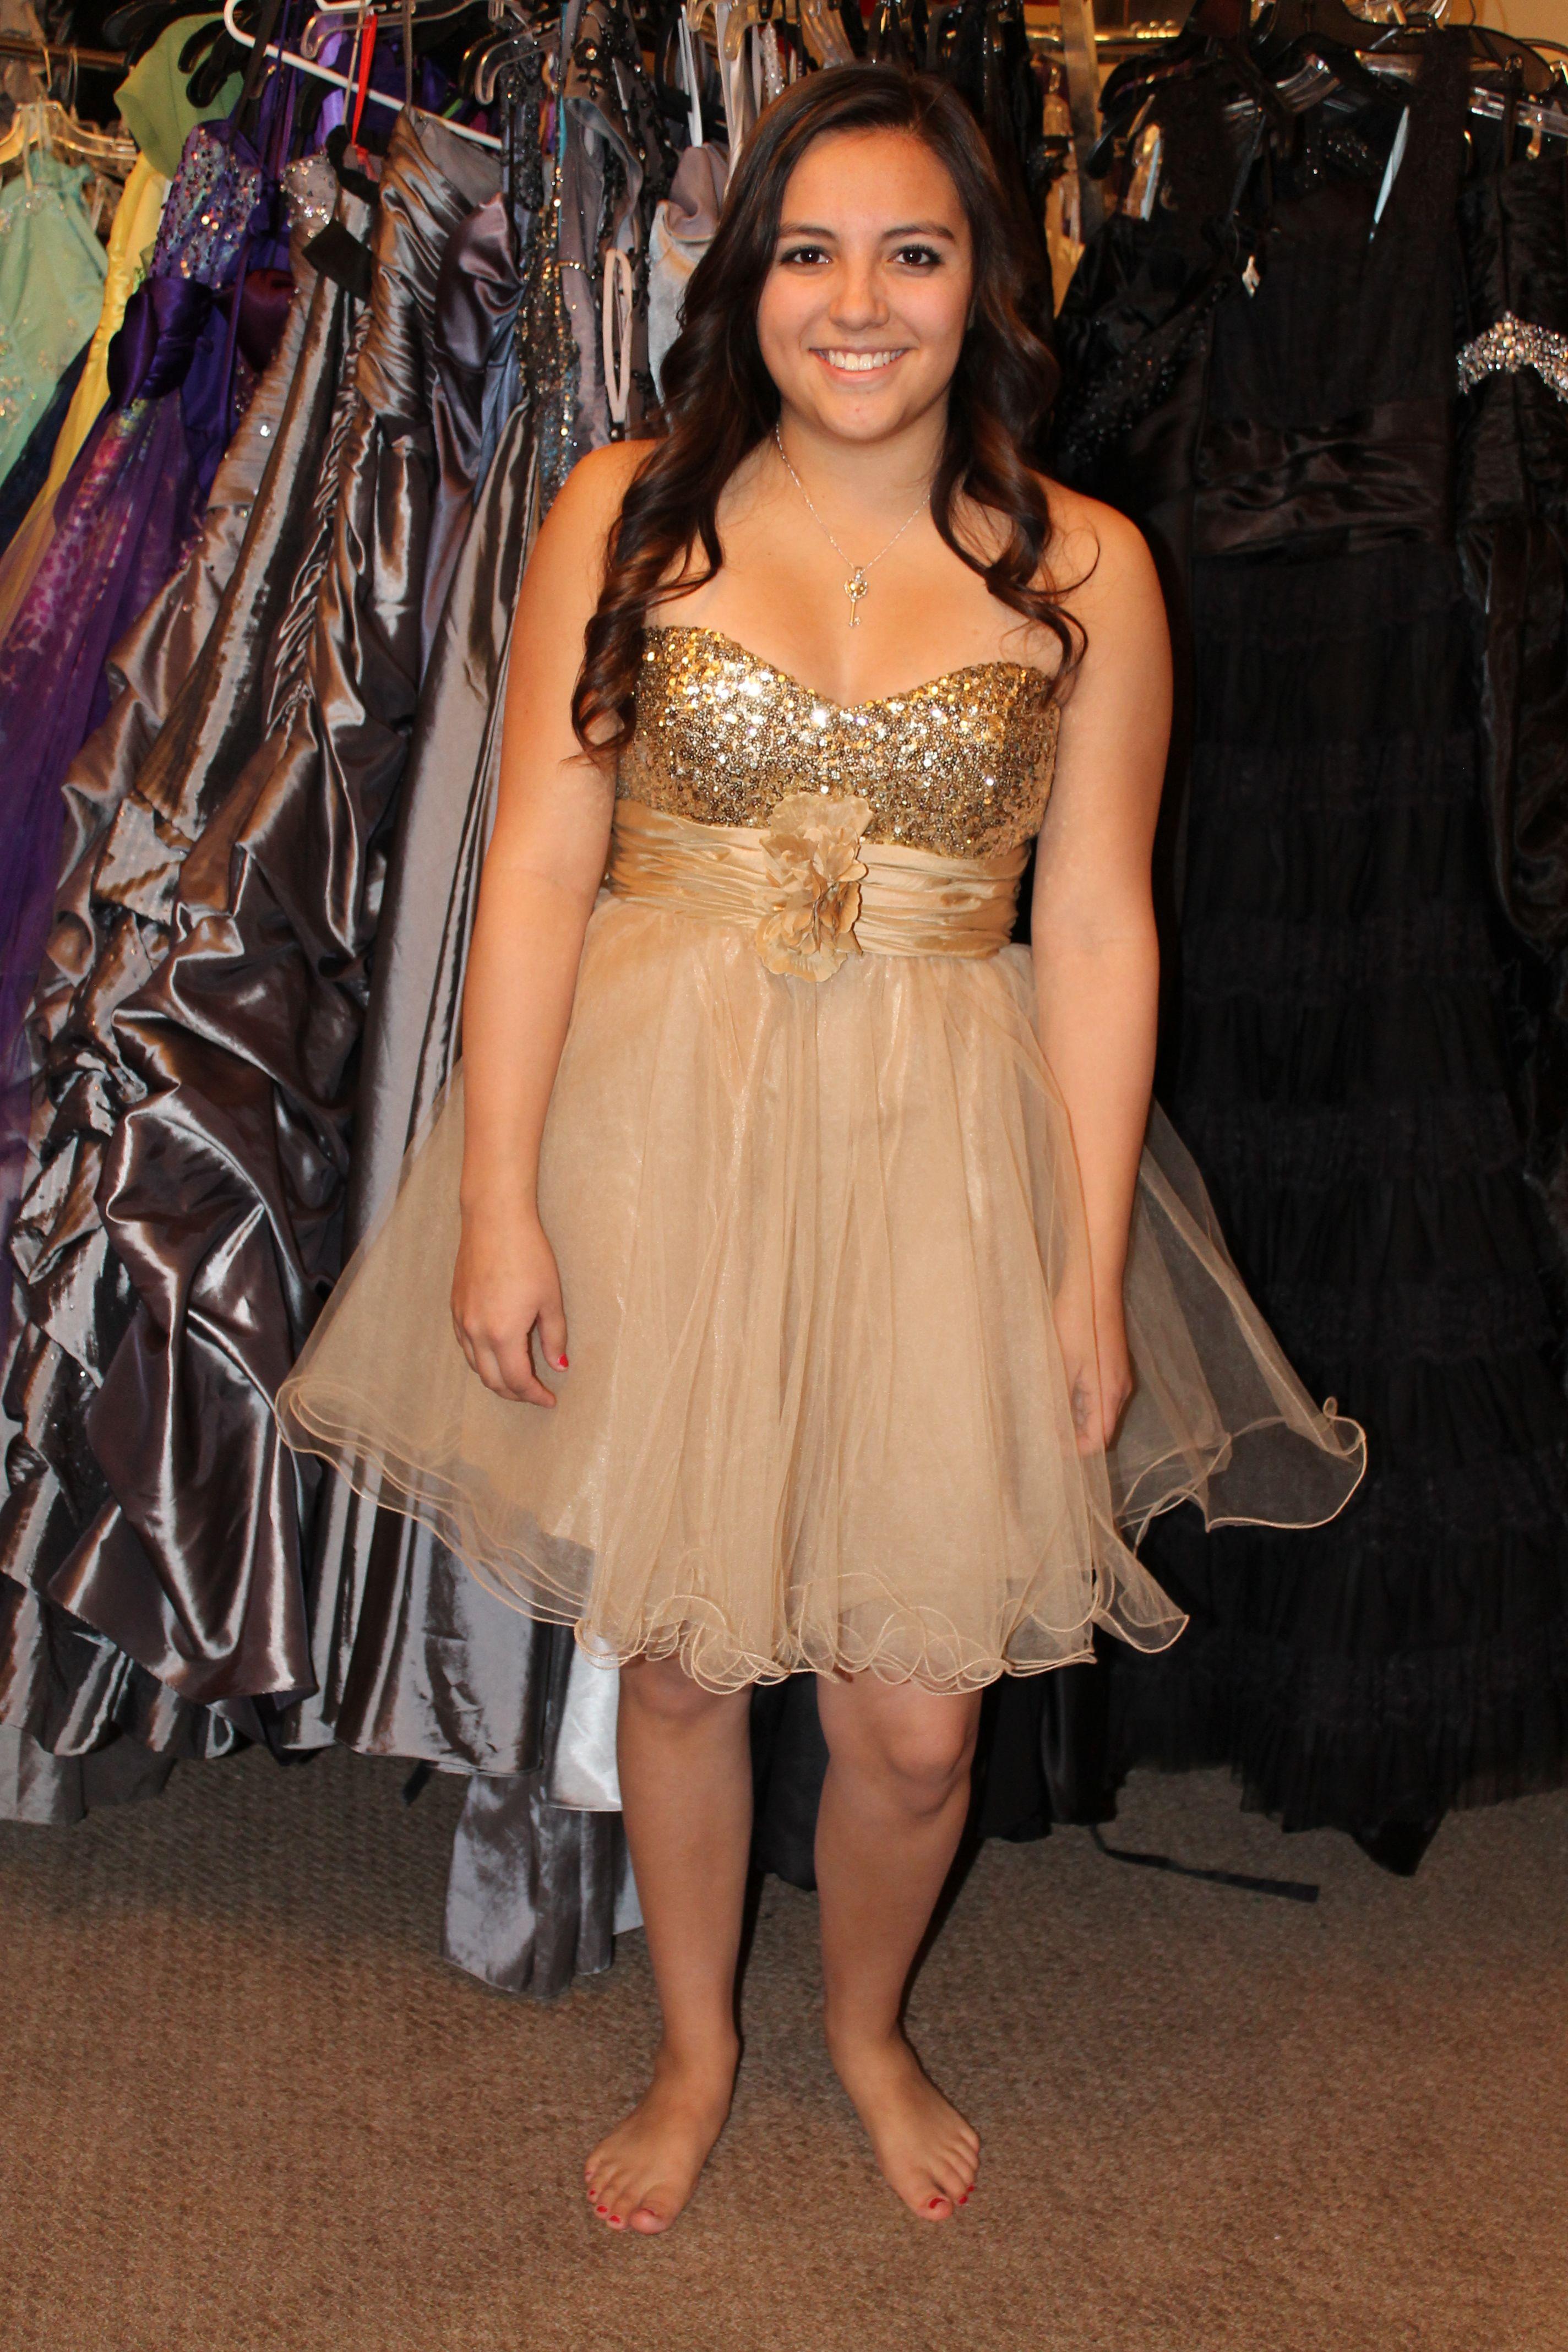 Short Gold Semi Formal Sweethearts Homecoming Or Prom Dress Available For Rent At Dazzling Dress Rentals In Riverton Ut 8 Dazzling Dress Dresses Dress Rental [ 4272 x 2848 Pixel ]